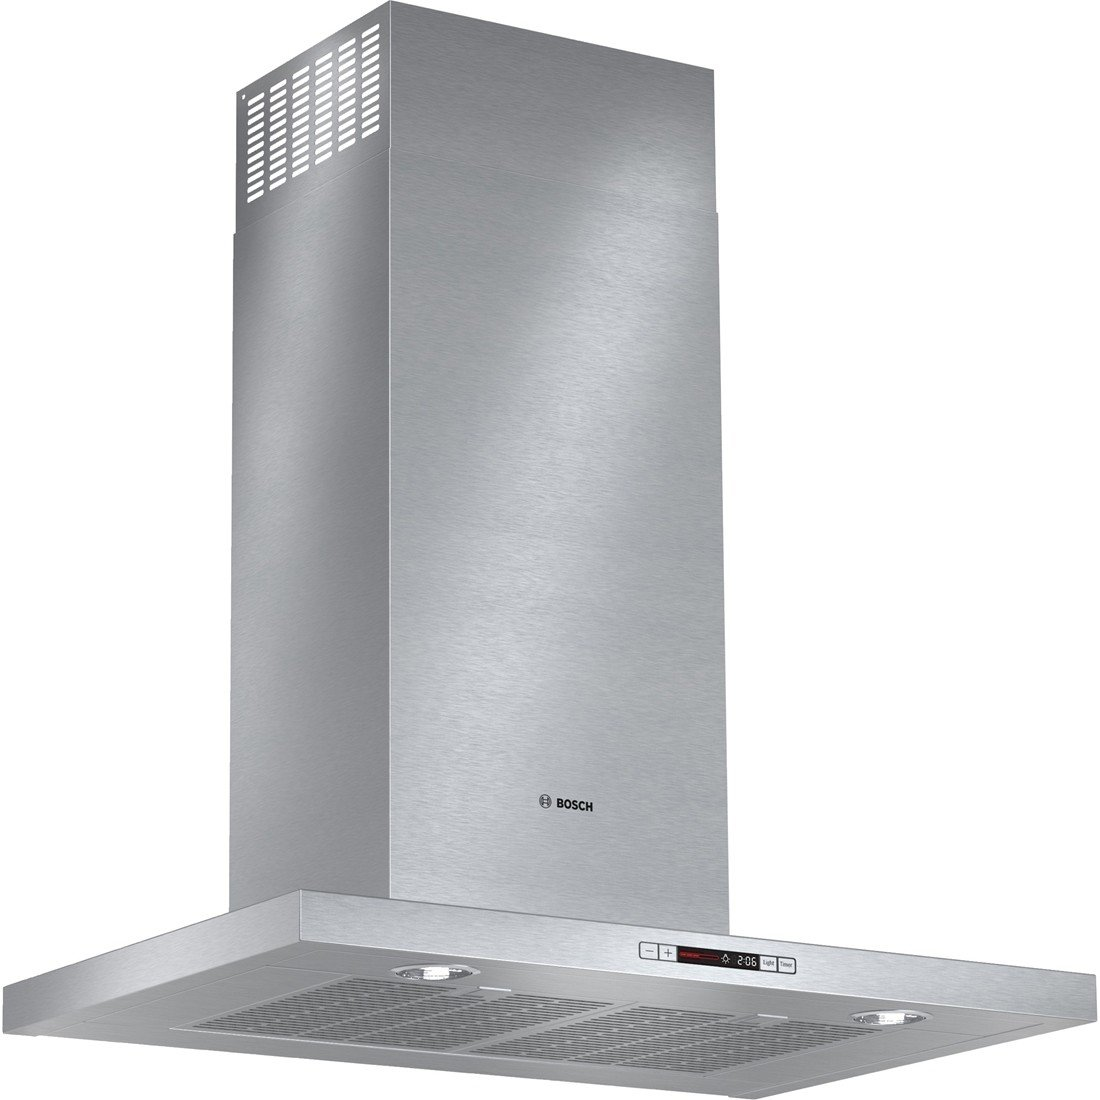 Amazon.com 500 Series HCB50651UC 30   Box Canopy Chimney Hood with 600 CFM Centrifugal Integrated Blower Four Speed Touch Controls with LCD Display and ...  sc 1 st  Amazon.com & Amazon.com: 500 Series HCB50651UC 30